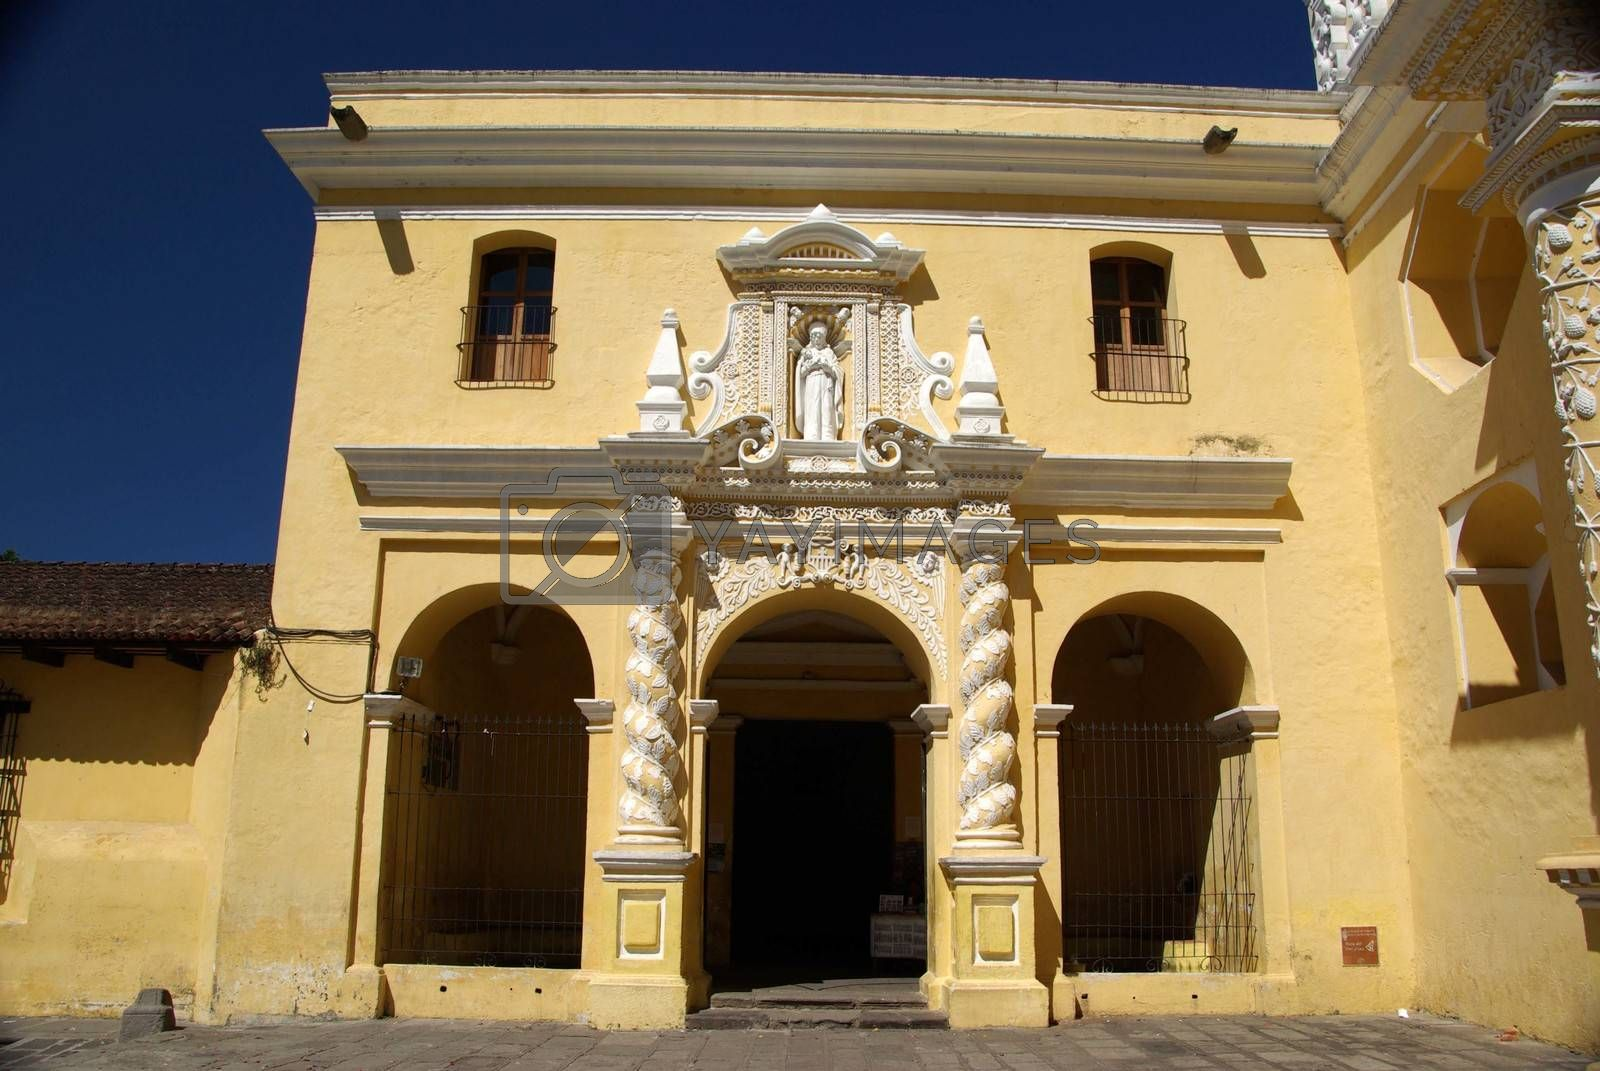 Catholic church in the ancient colonial city of Antigua in Guatemala, Central America